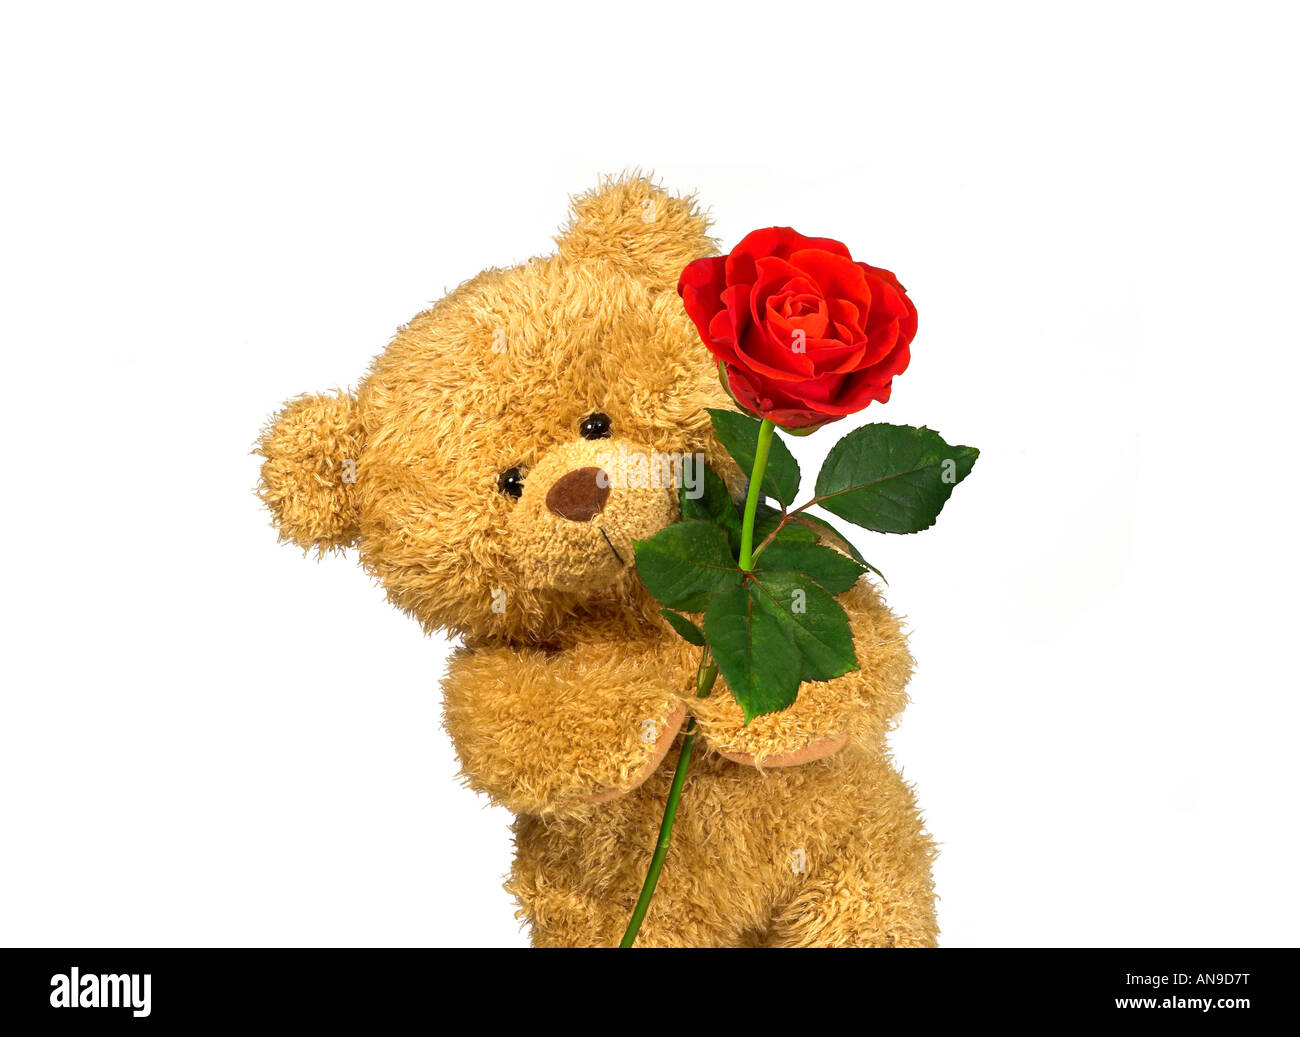 Teddy Bear With Red Rose Stock Photo Royalty Free Image